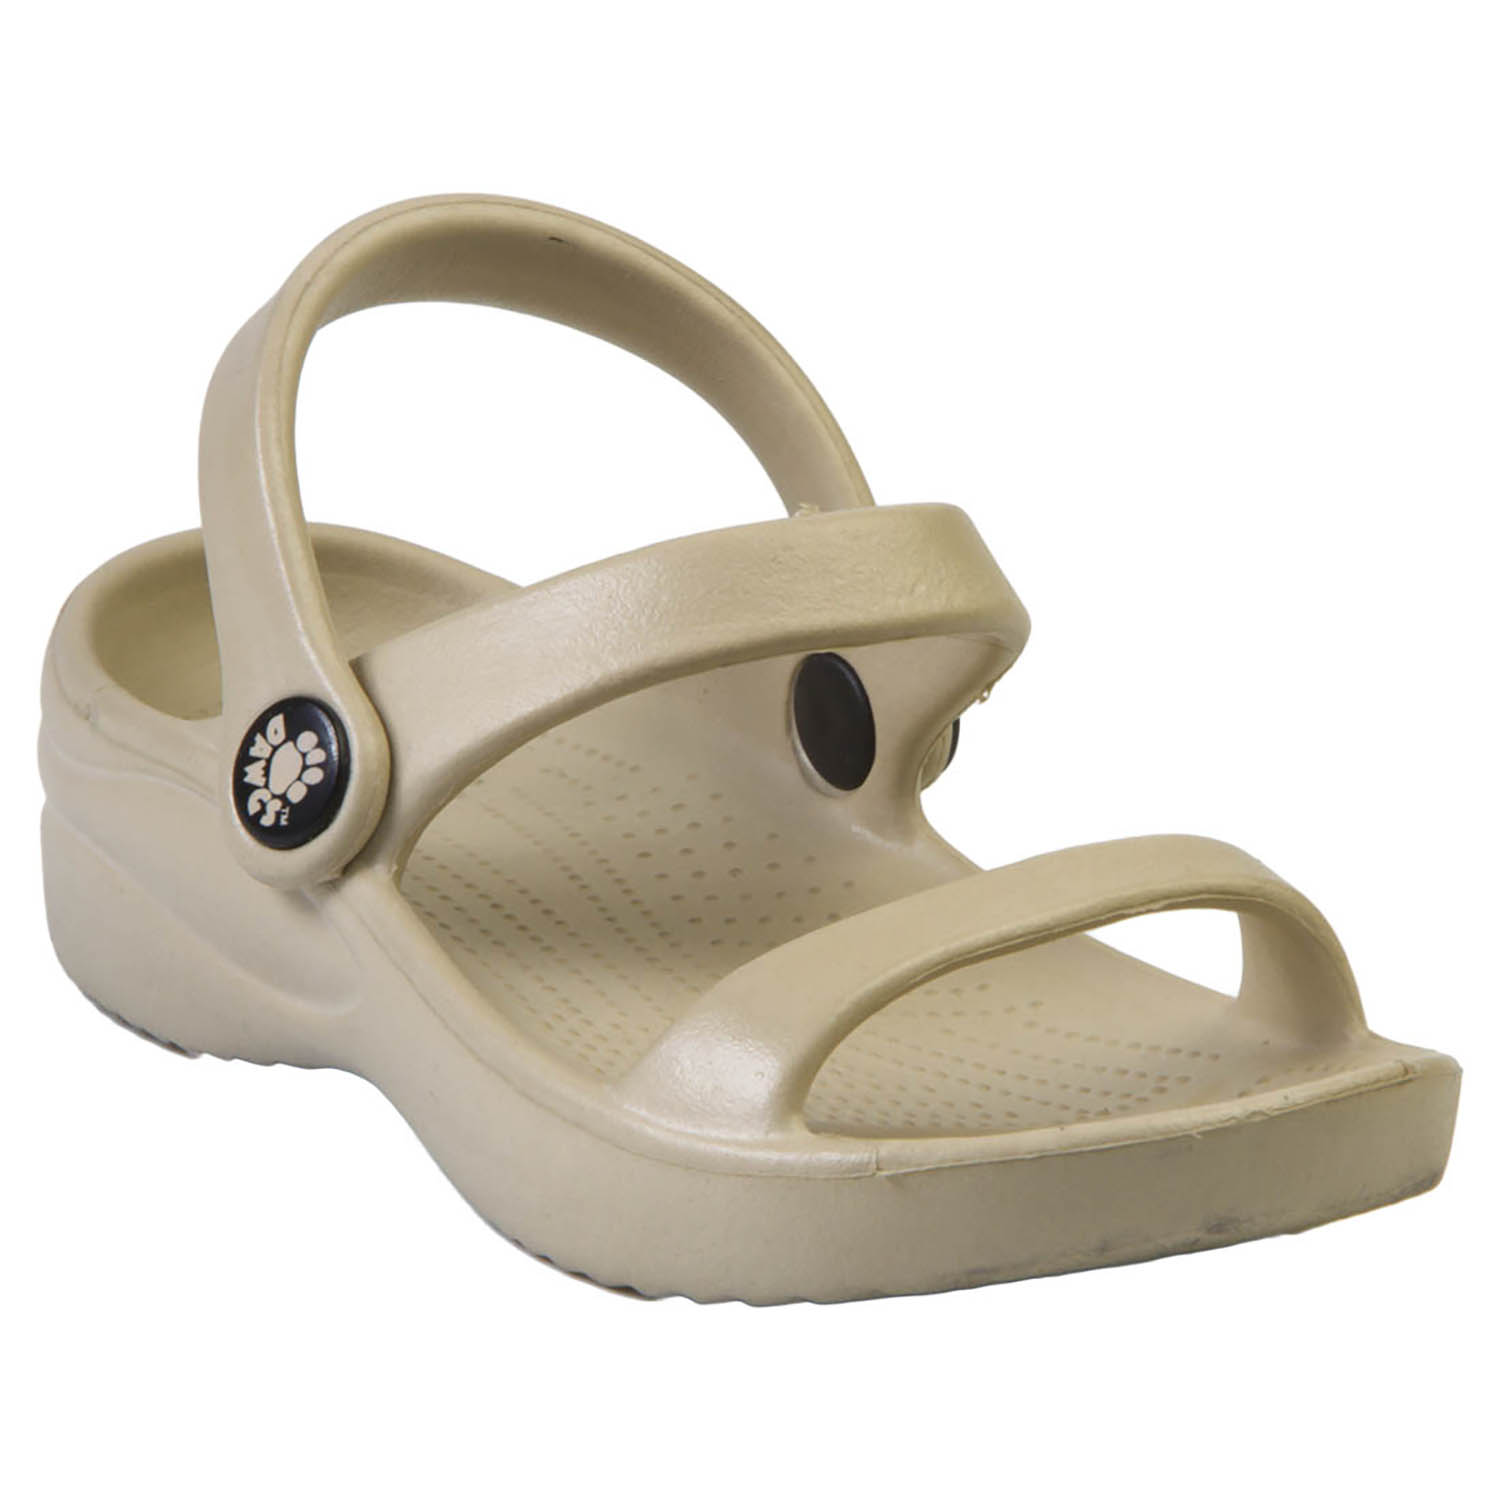 Dawgs Toddlers' 3-Strap Sandals